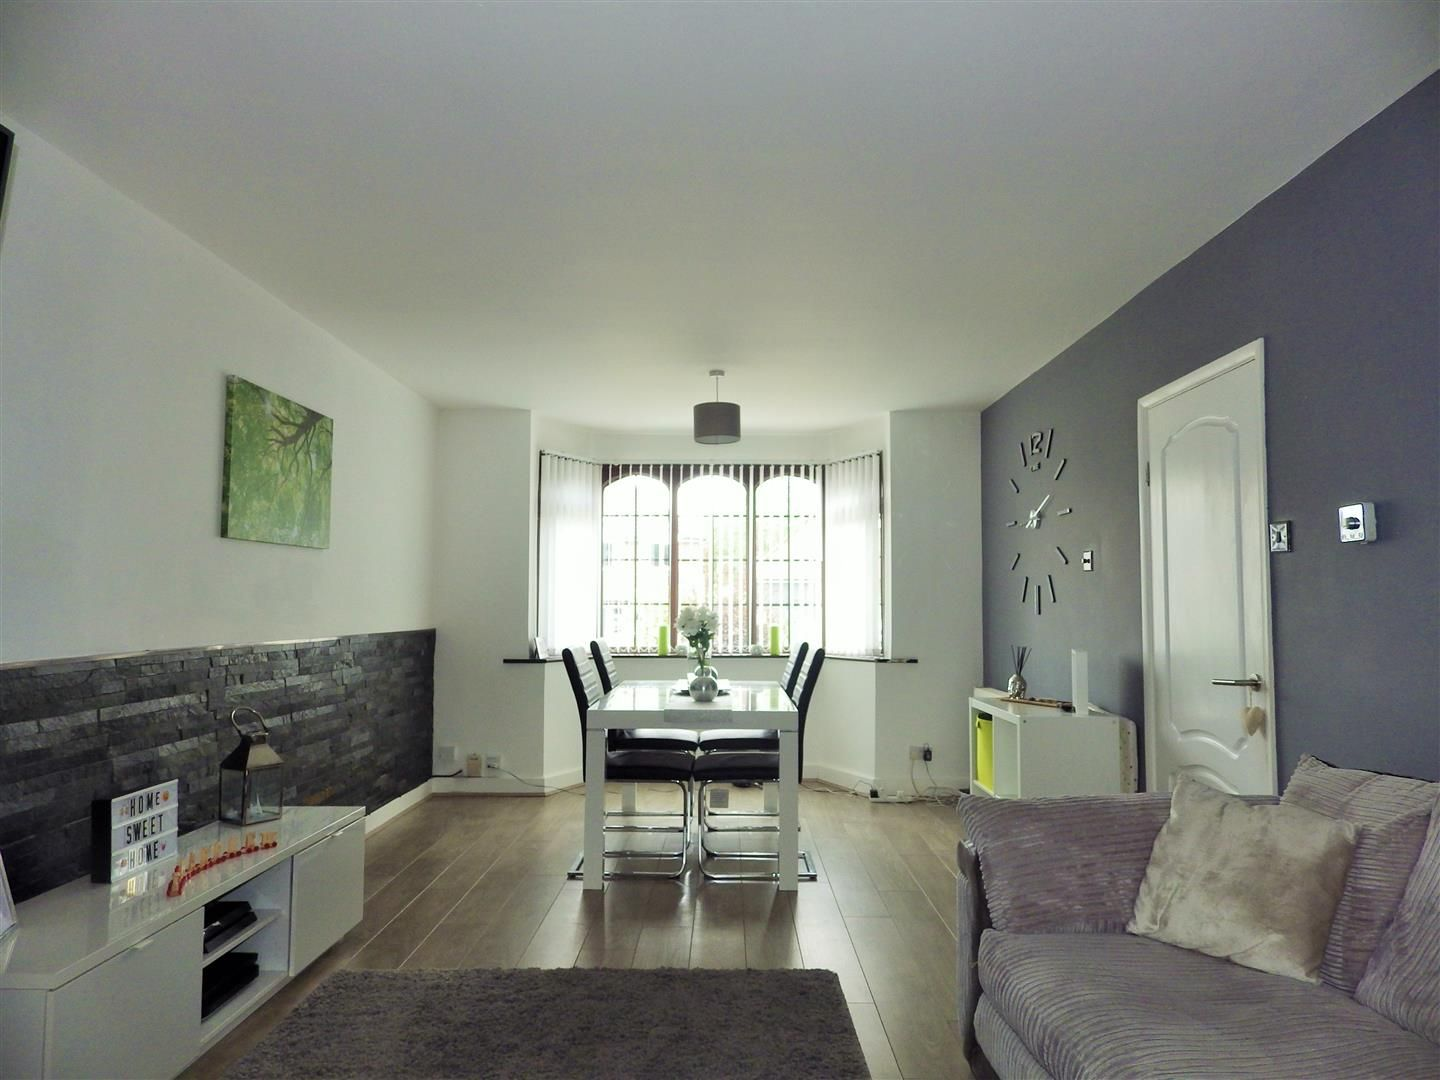 3 bed semi-detached for sale in Hasbury 2